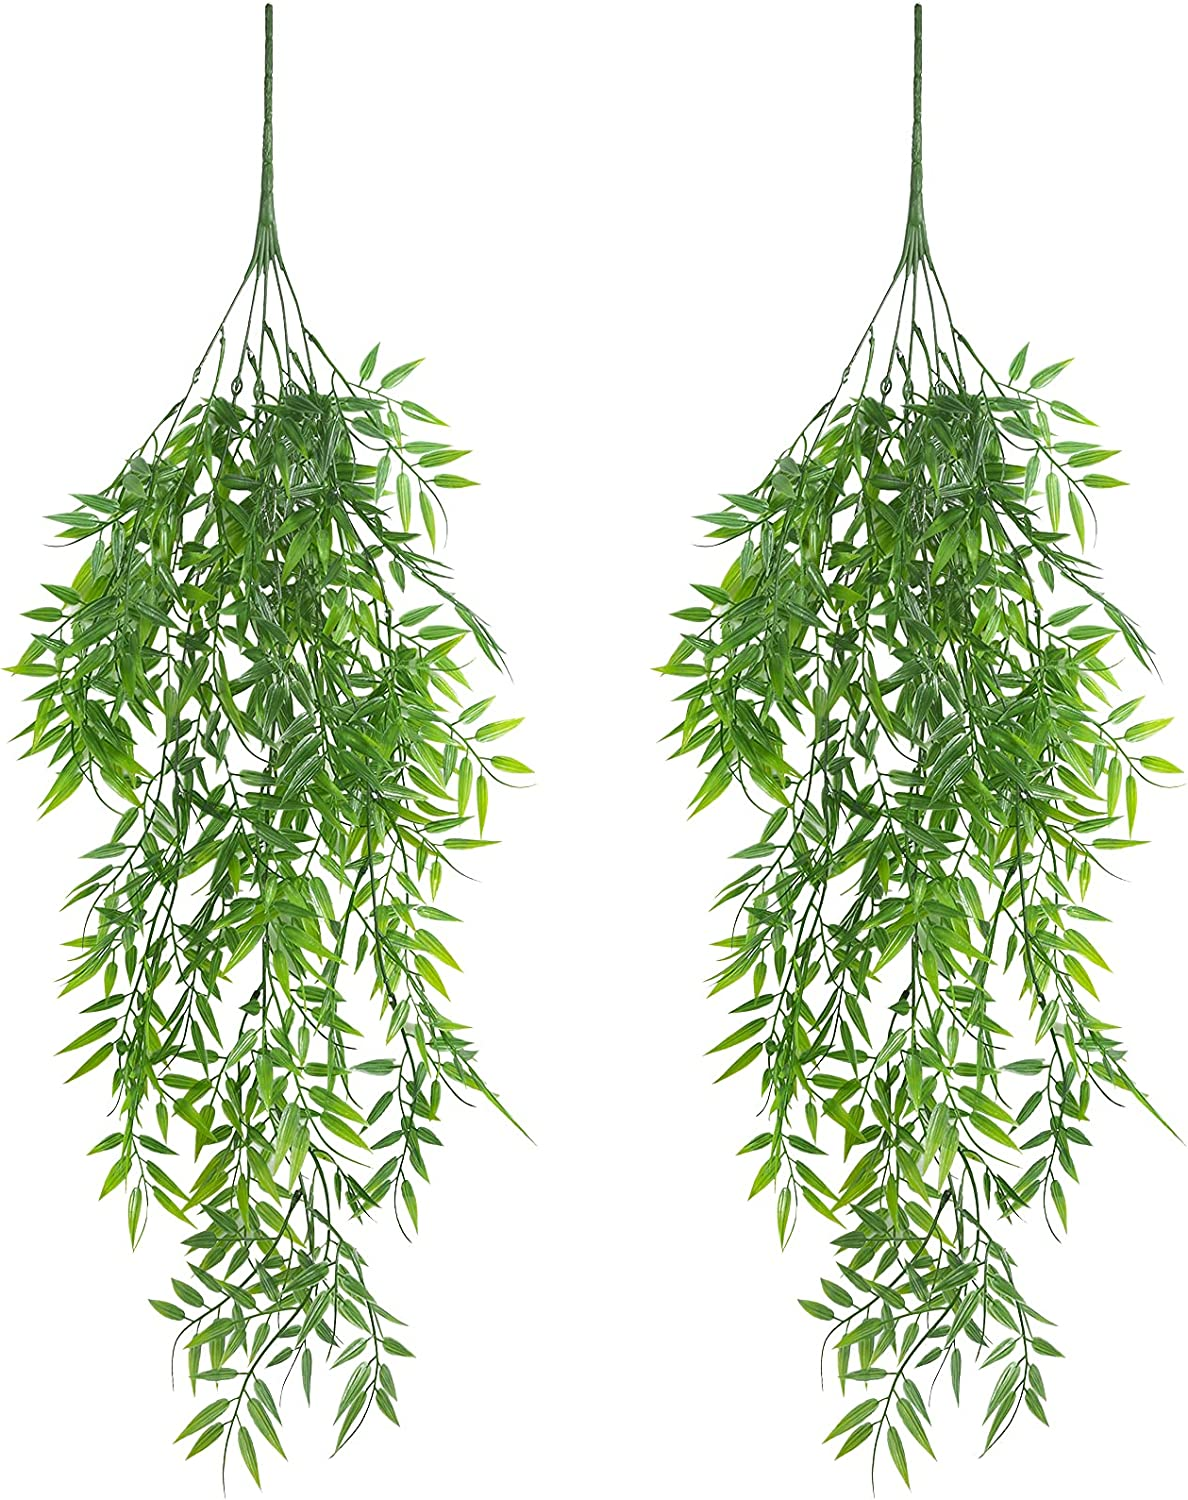 Omldggr 2 Pieces Artificial Hanging Ivy Vine Bamboo Leave Fake Hanging Basket Plants Walls Trailing Greenery for Indoor Outdoor Party Garden Office Wedding Decor